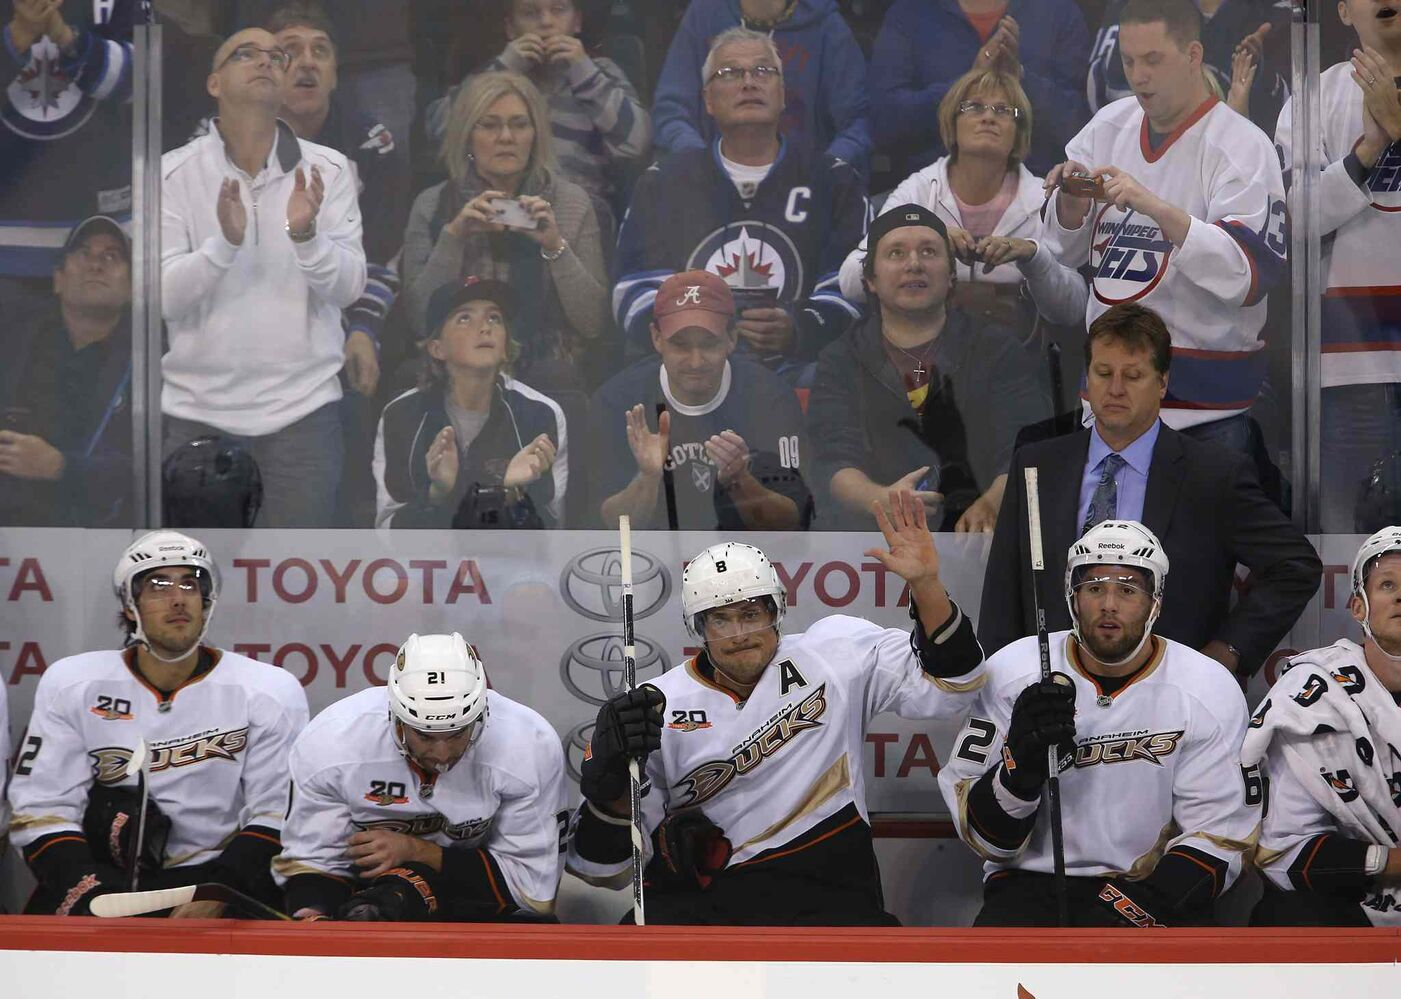 Anaheim Ducks' Teemu Selanne waves to fans as they salute him during the first period. Selanne, of course, used to thrill fans as a member of the Jets. (TREVOR HAGAN / THE CANADIAN PRESS)